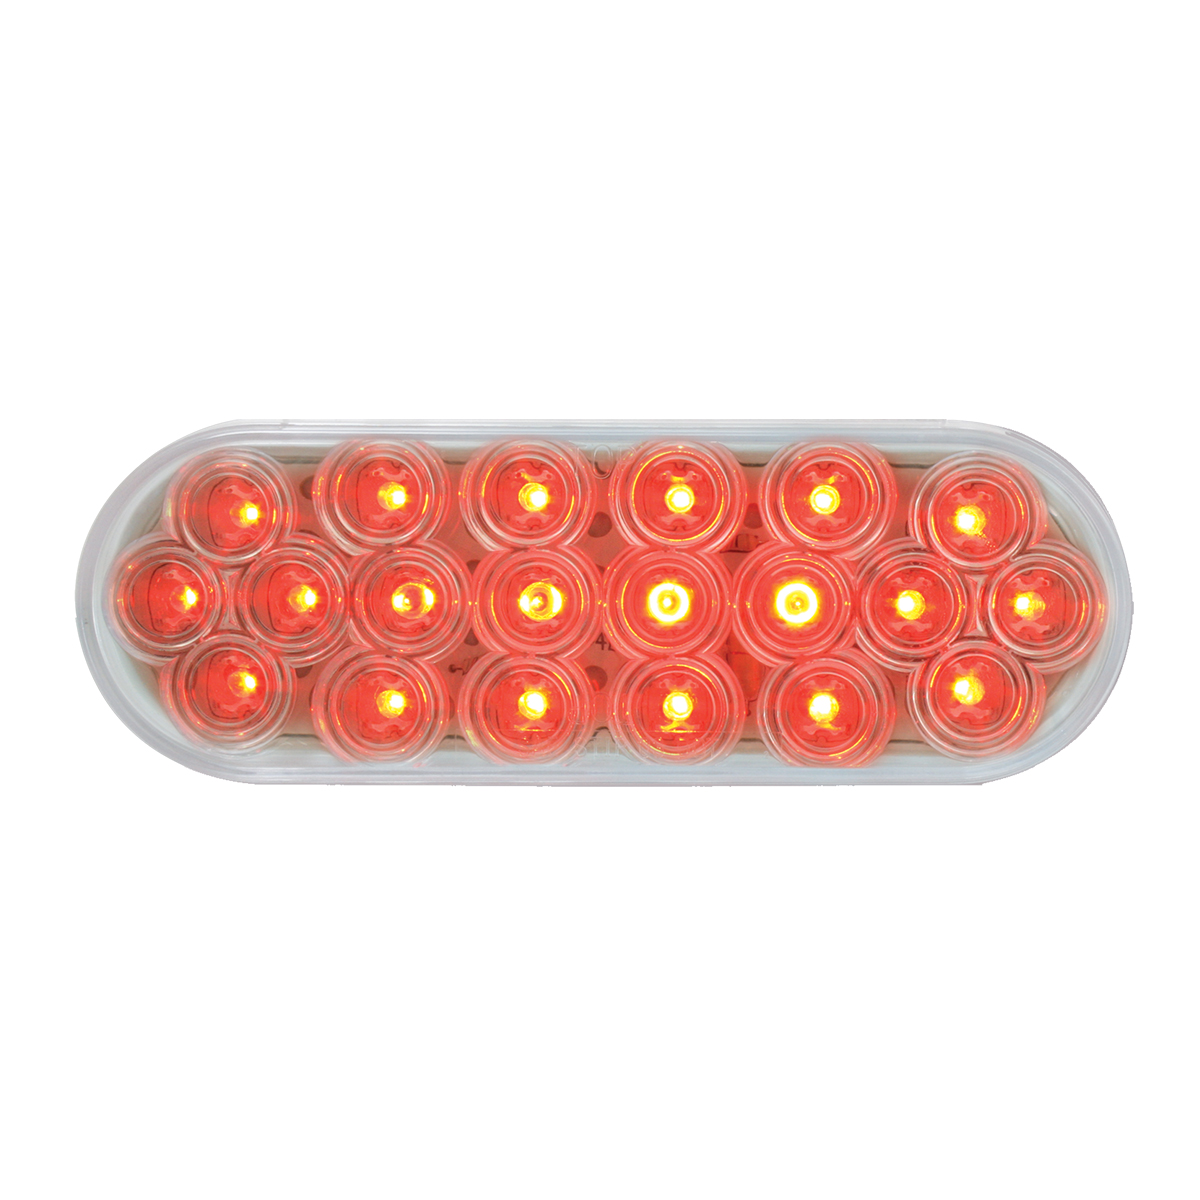 #87729 Oval Fleet LED Flat Red/Clear Light - Slanted